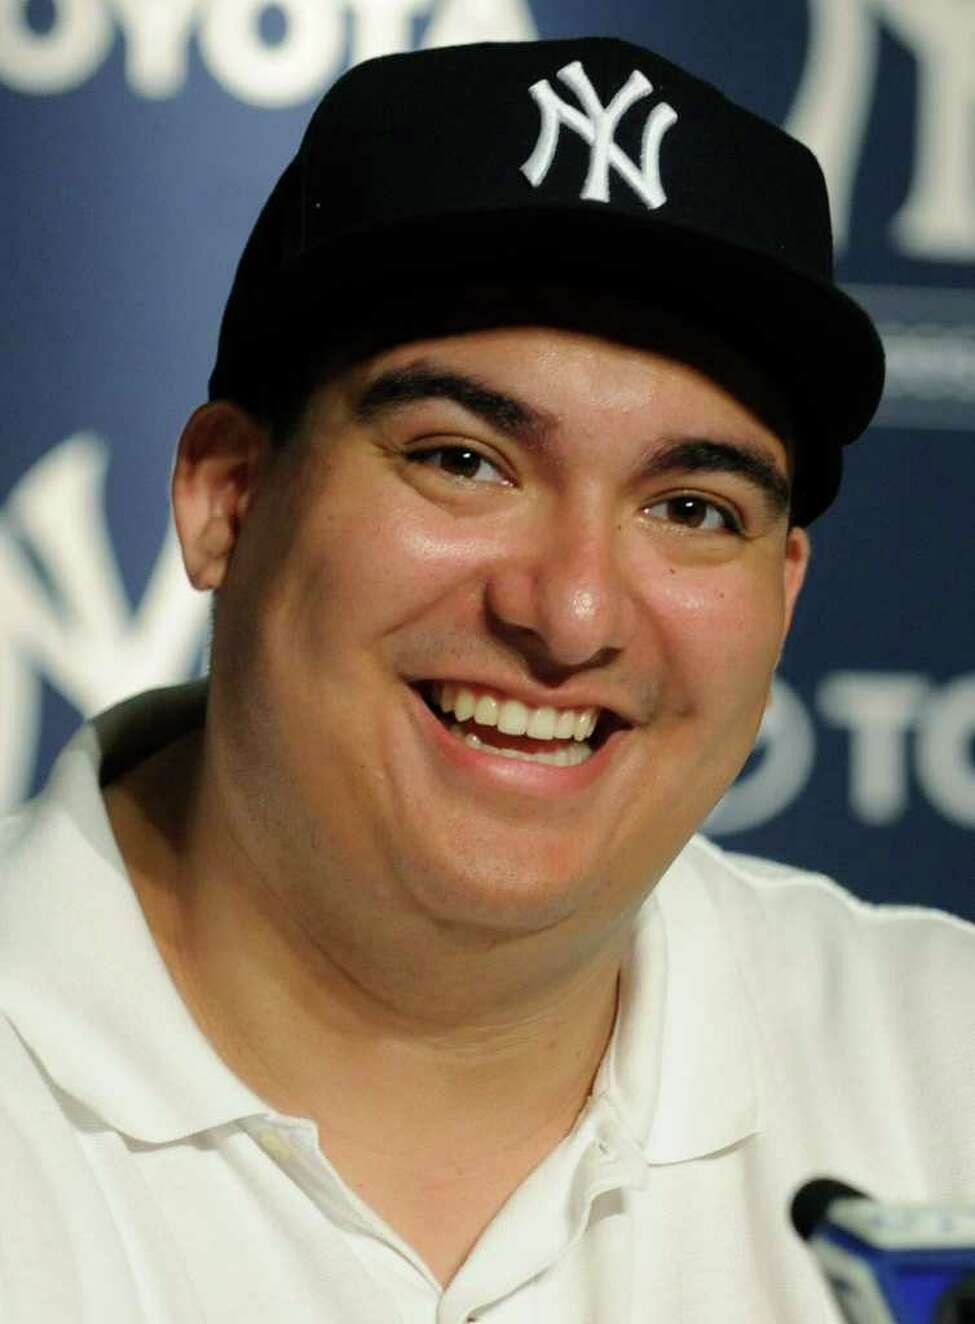 Christian Lopez smiles during a news conference after catching the 3,000th career hit by New York Yankees' Derek Jeter in the third inning of a baseball game against the Tampa Bay Rays, Saturday, July 9, 2011, at Yankee Stadium in New York. (AP Photo/Bill Kostroun)